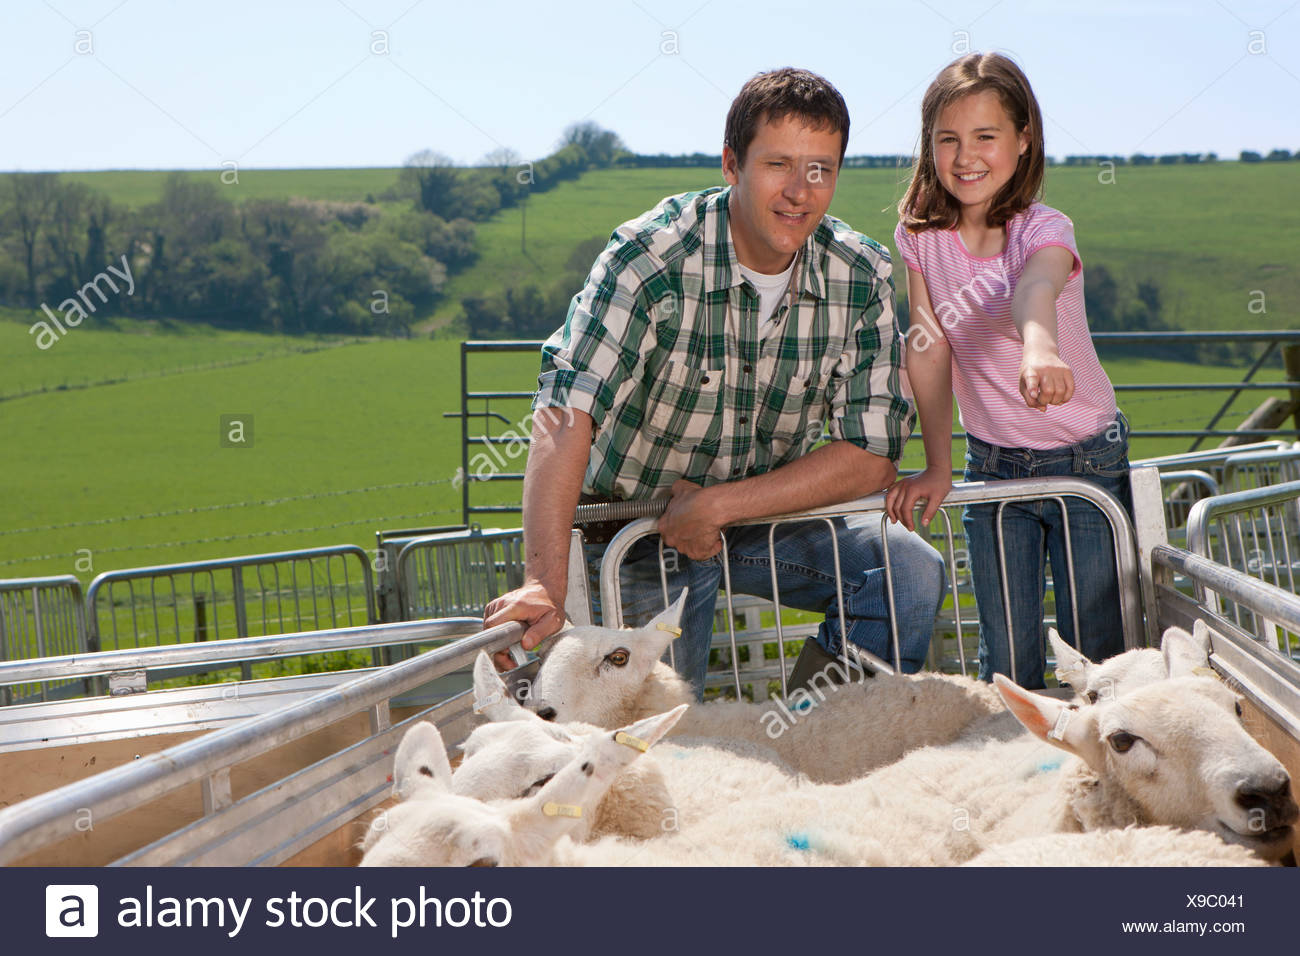 Shepherd and daughter counting sheep in gated pasture - Stock Image